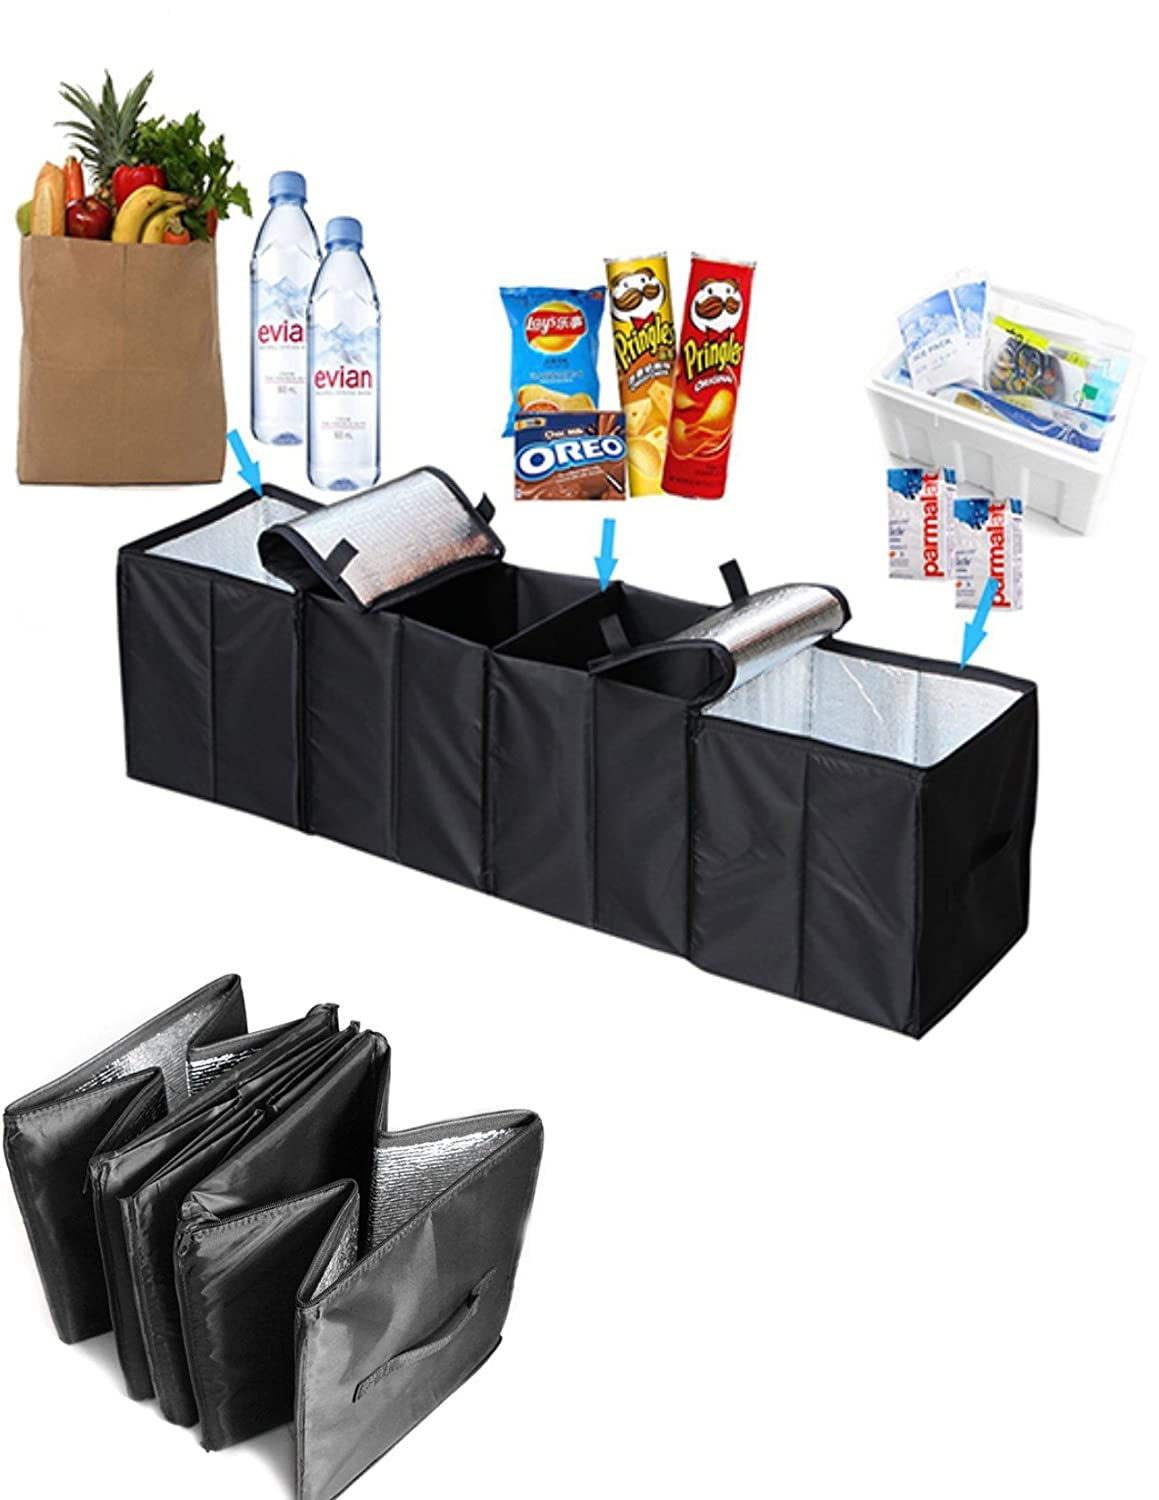 Collapsible Car Trunk Organizer, 4 in 1 Auto Truck Storage Container Foldable Multi 4 Compartments Storage Basket and Cooler & Warmer Set, Black